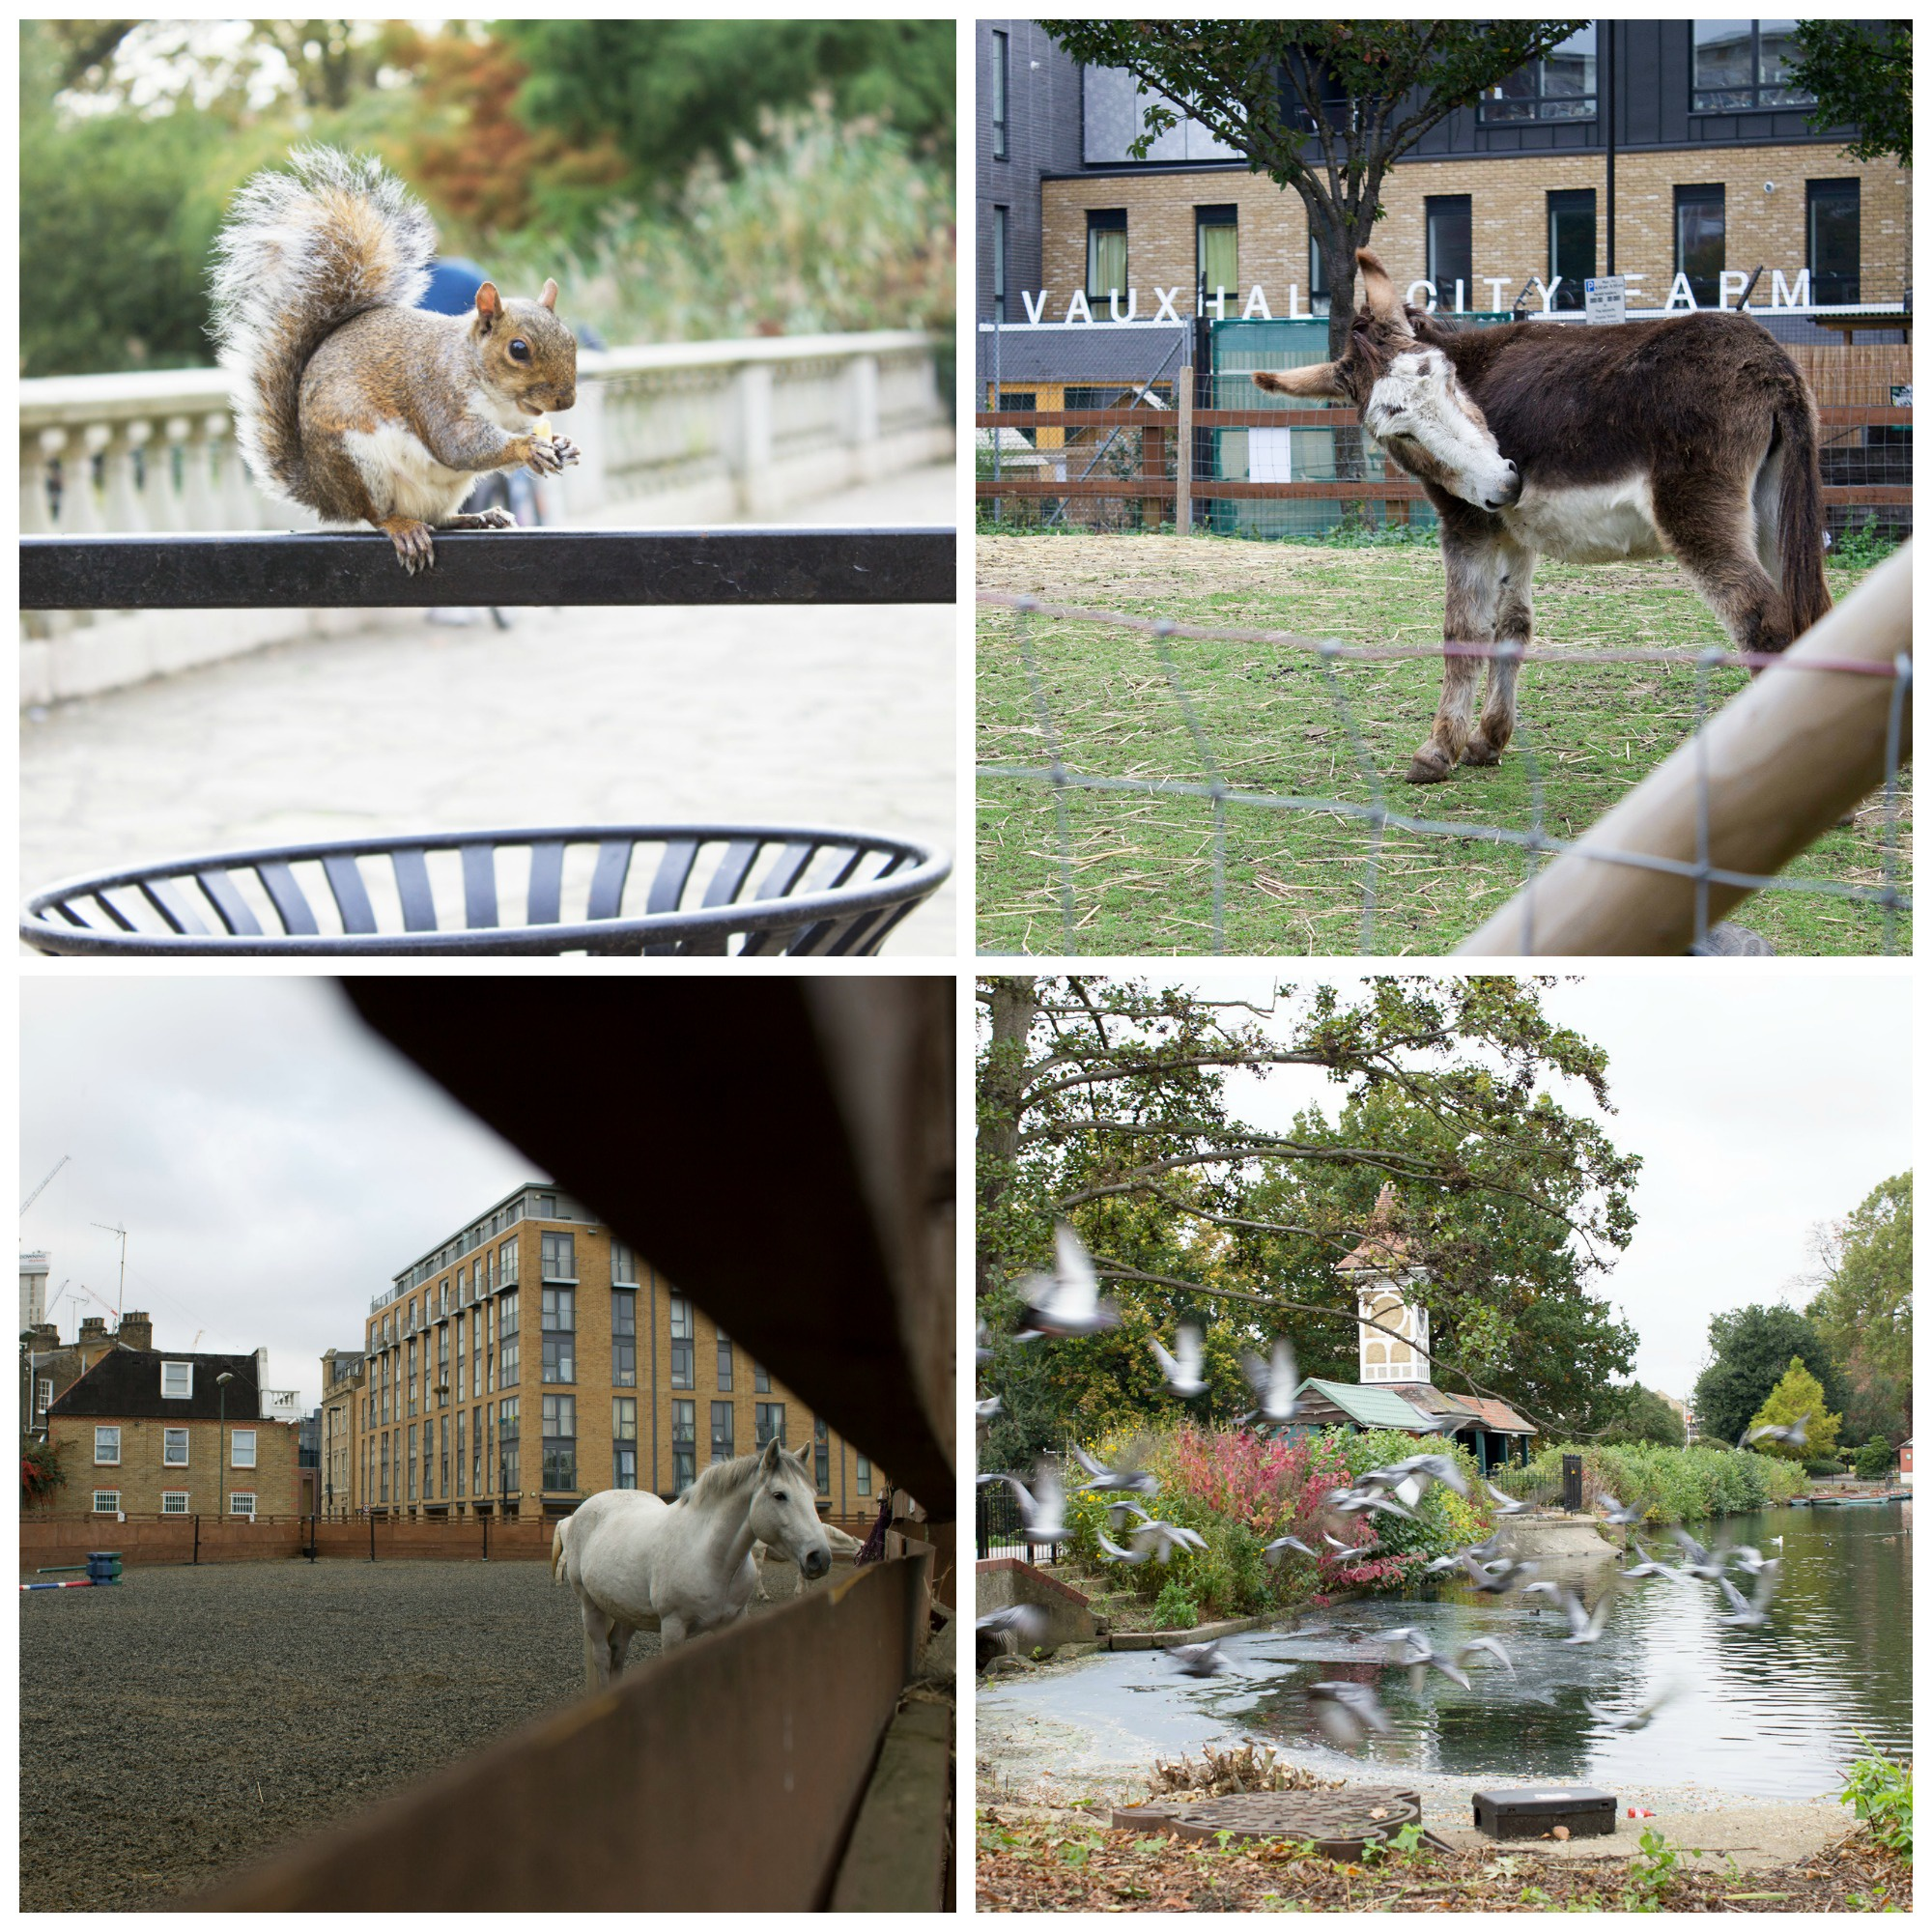 Collage of the animals you can find in London, including a squirrel on a fence, a donkey at Vauxhall farm, a horse and a flock of birds flying over some water